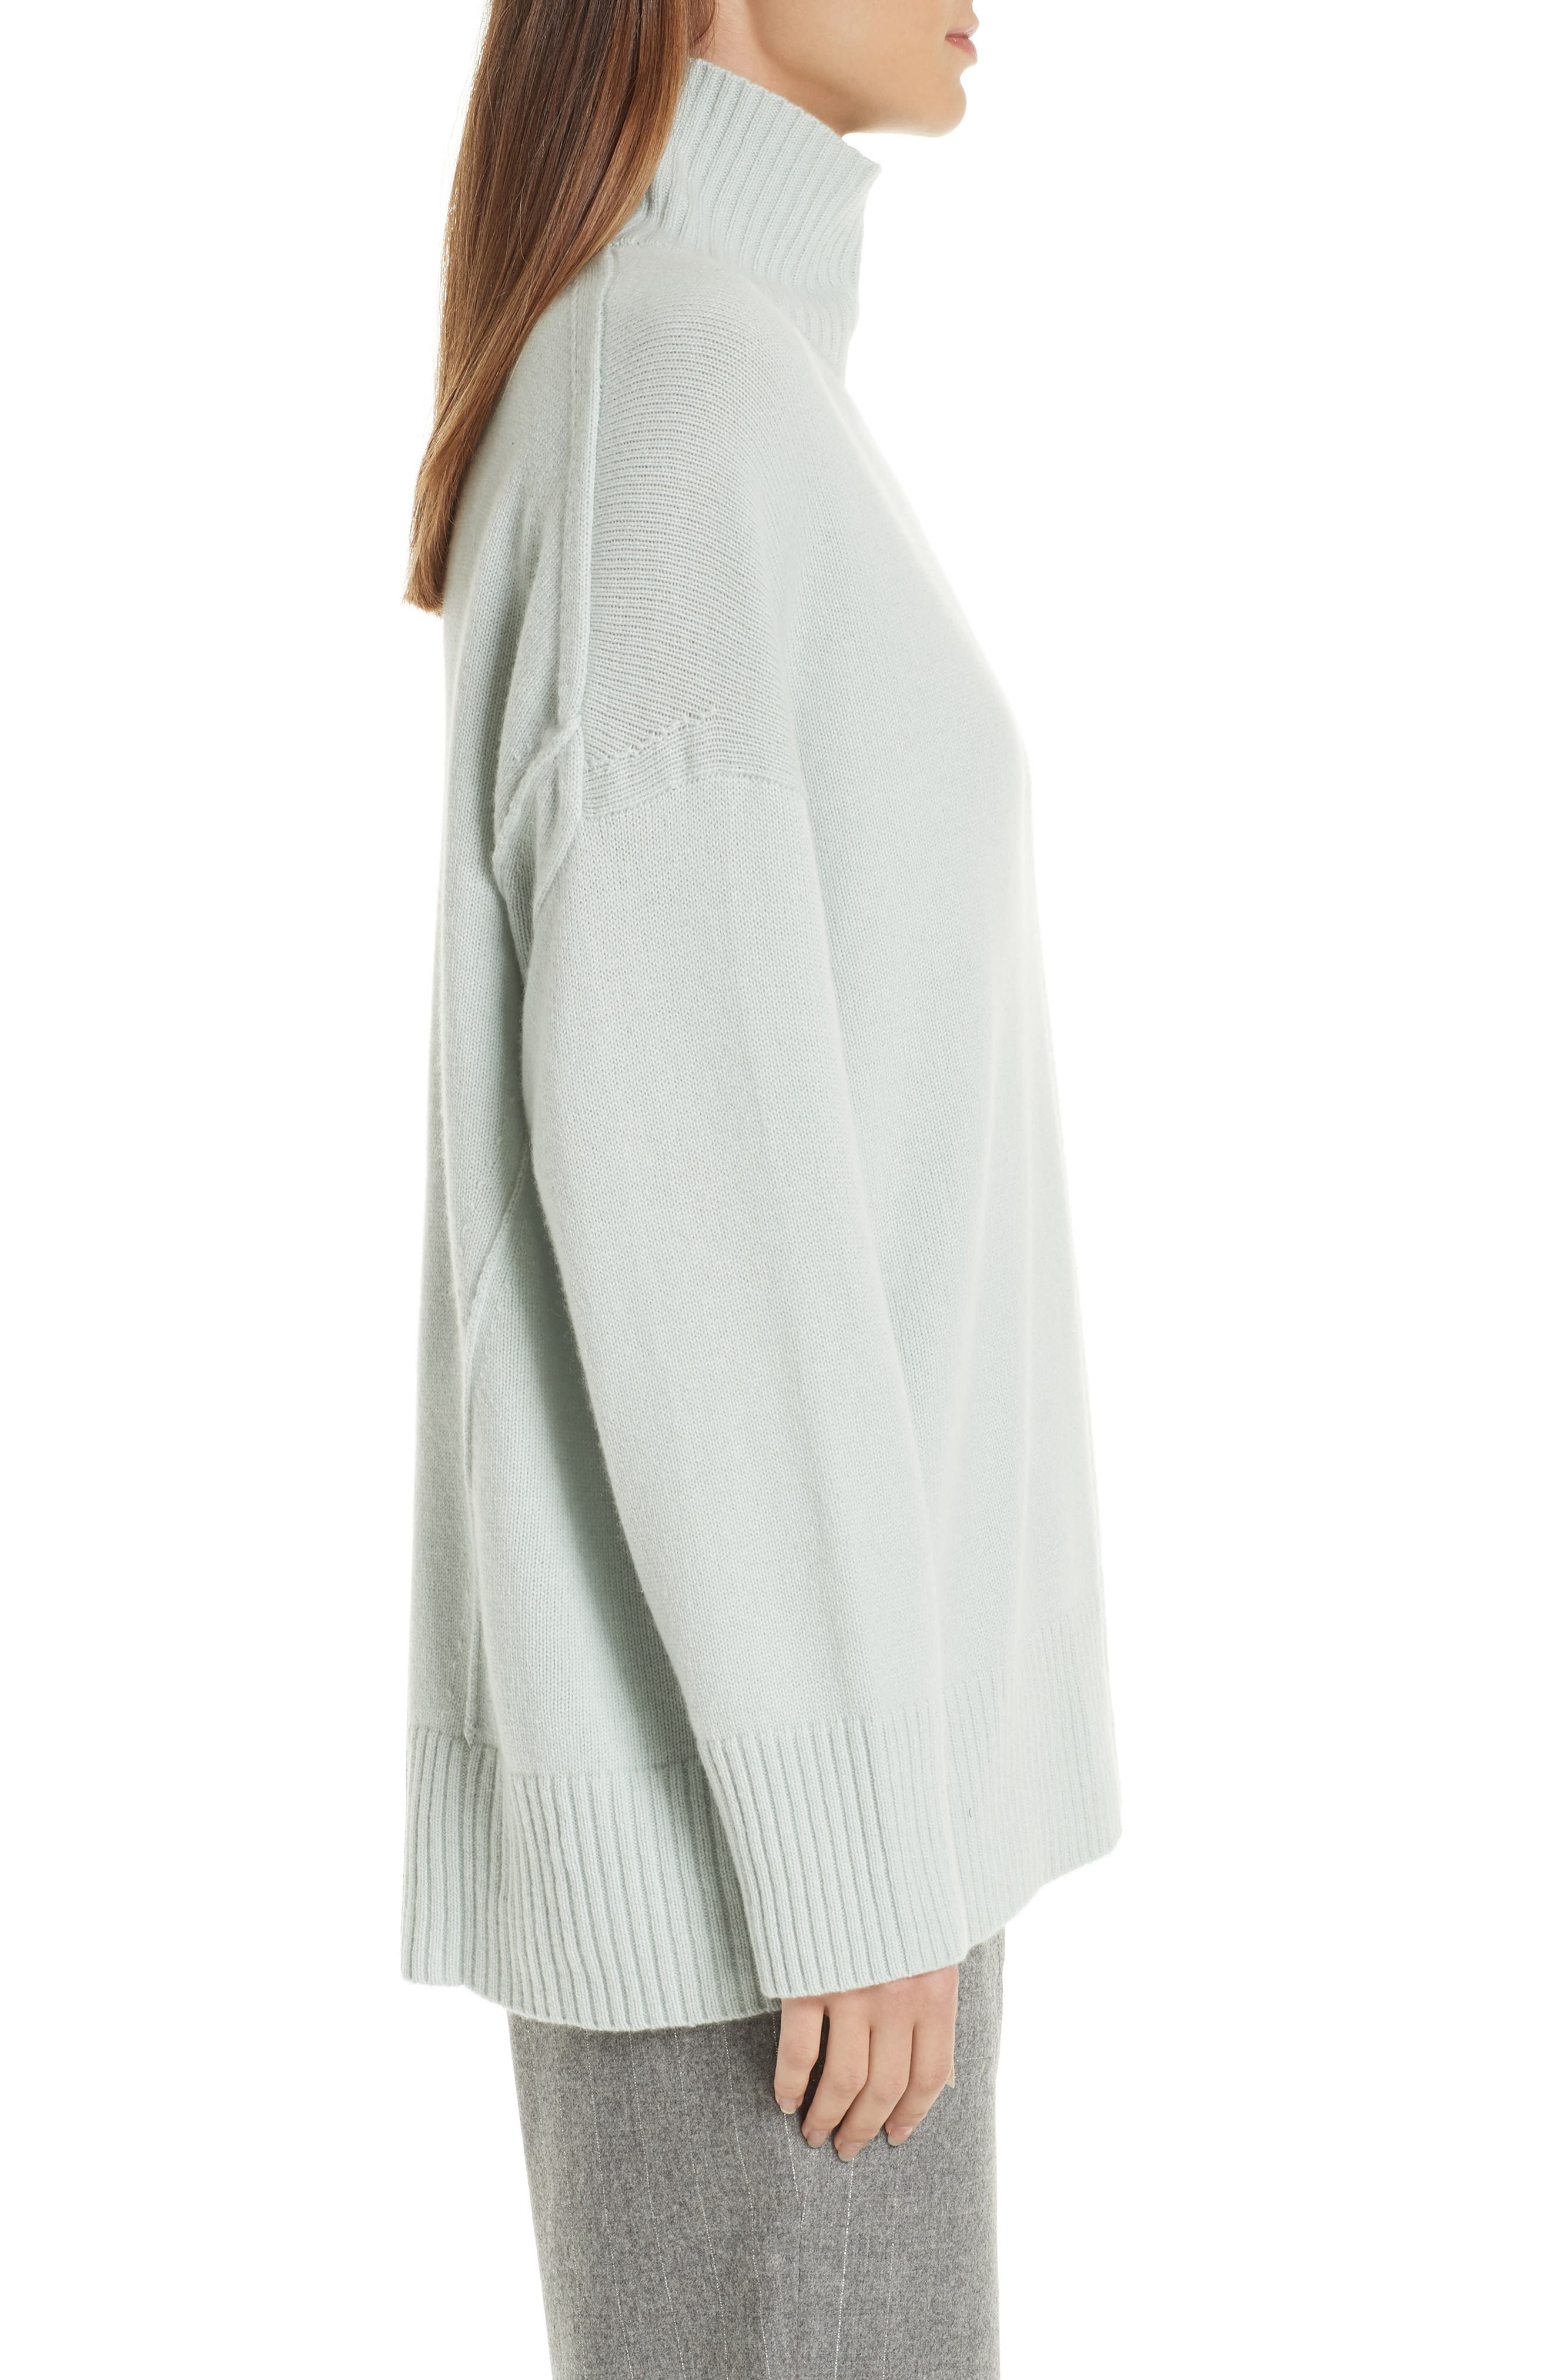 LAFAYETTE 148 NEW YORK,                             Relaxed Cashmere Turtleneck Sweater,                             Alternate thumbnail 3, color,                             400